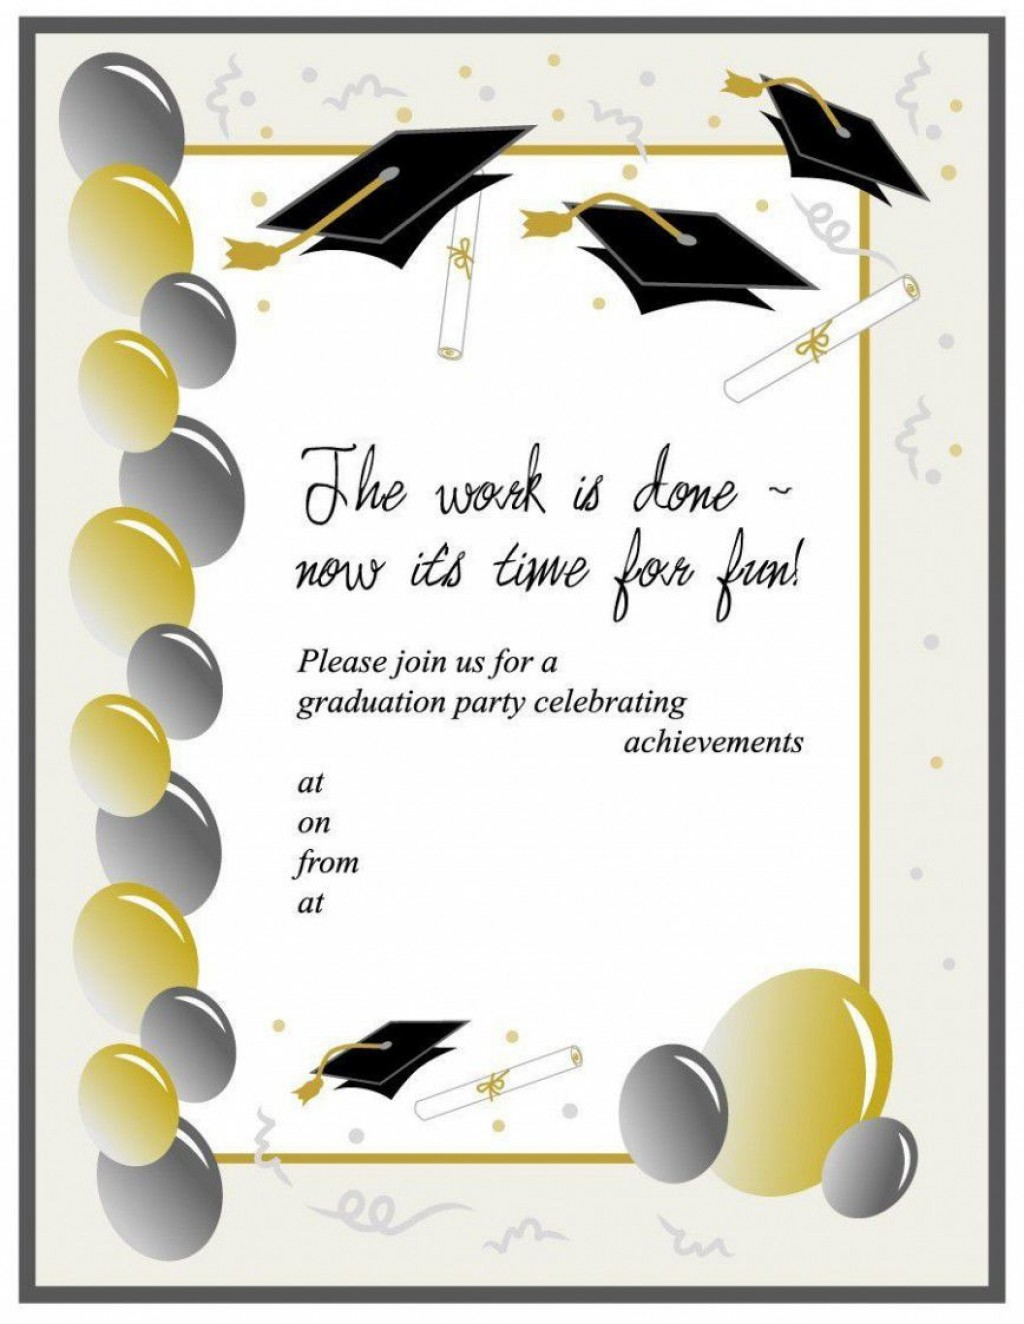 000 Awful Free Graduation Announcement Template Picture  Templates For Word MicrosoftLarge